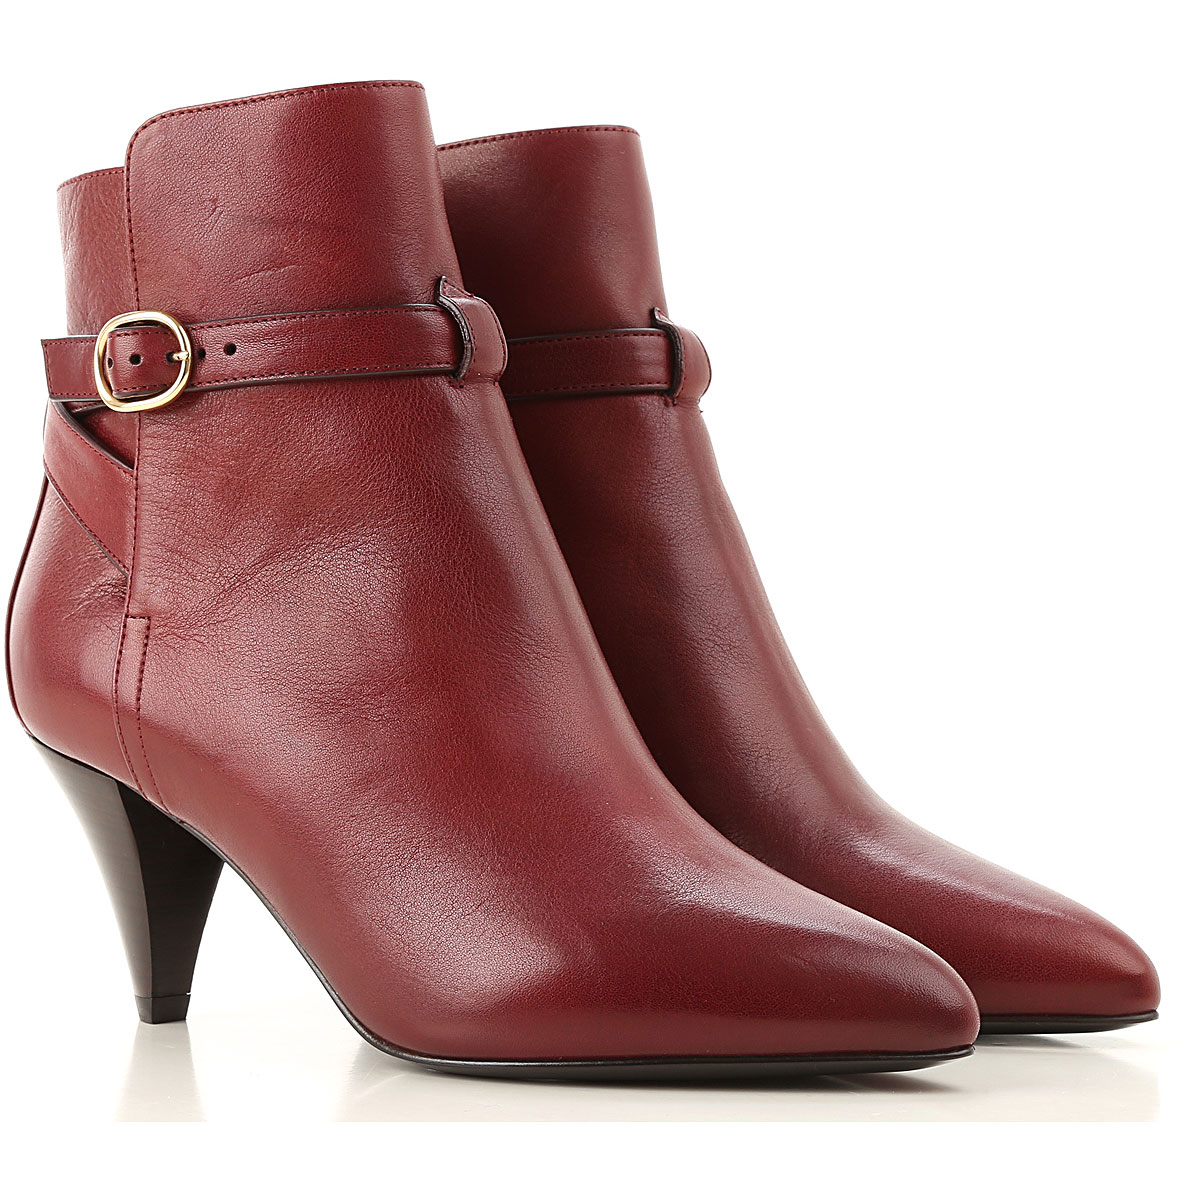 Celine Boots for Women, Booties On Sale, Burgundy, Leather, 2019, 5 5.5 6 6.5 7 8 9